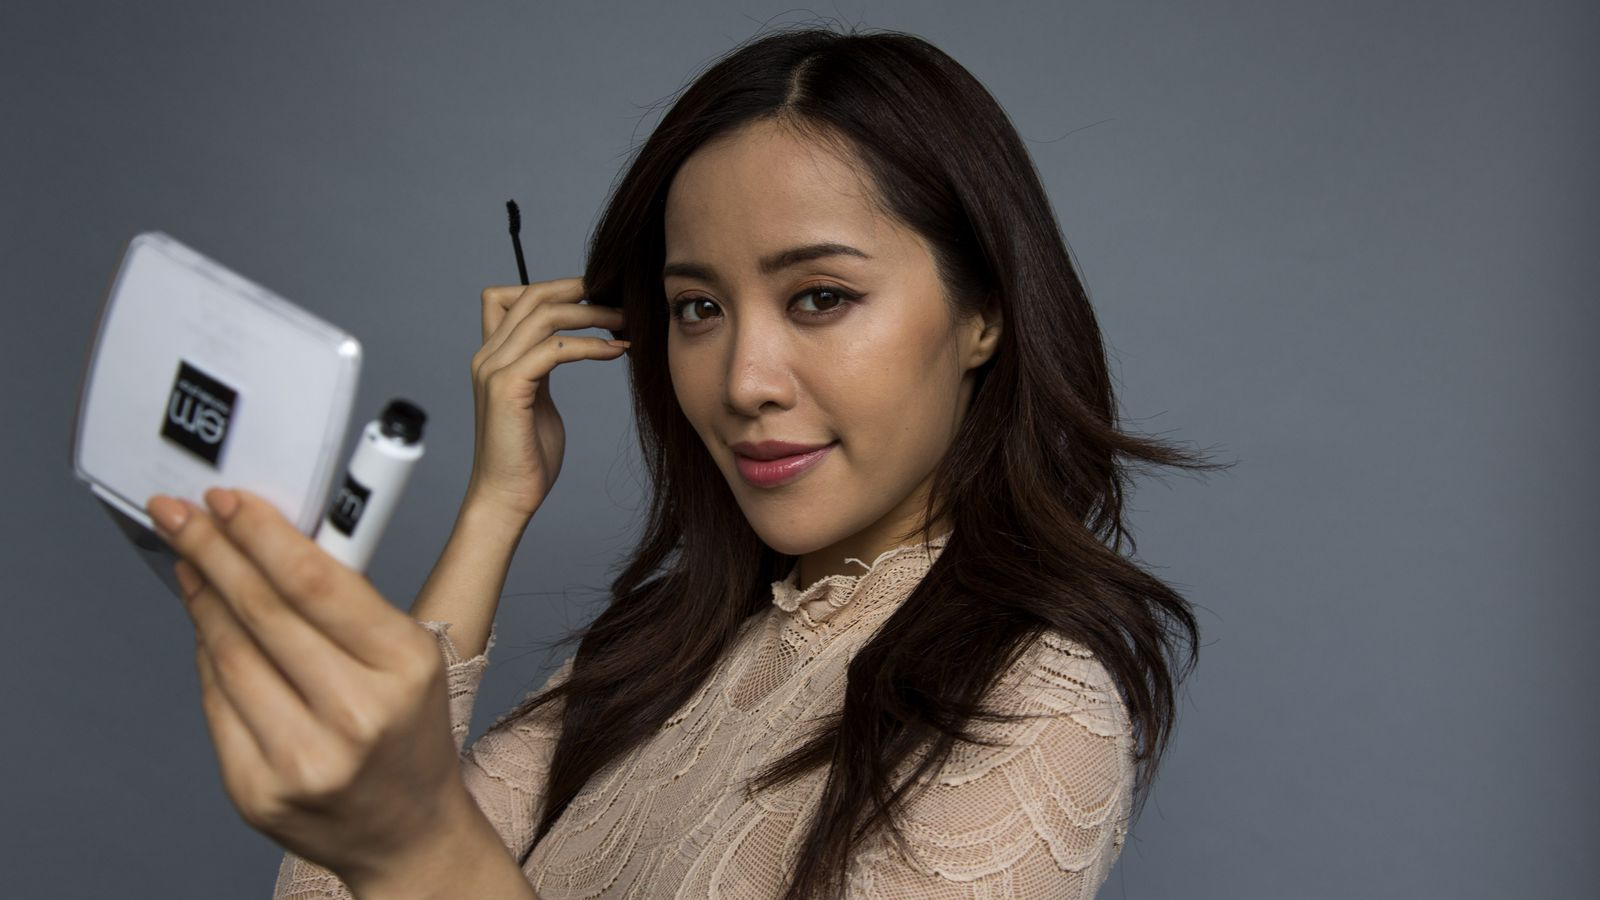 L'Oréal Sells Michelle Phan's Beauty Line Back to Her